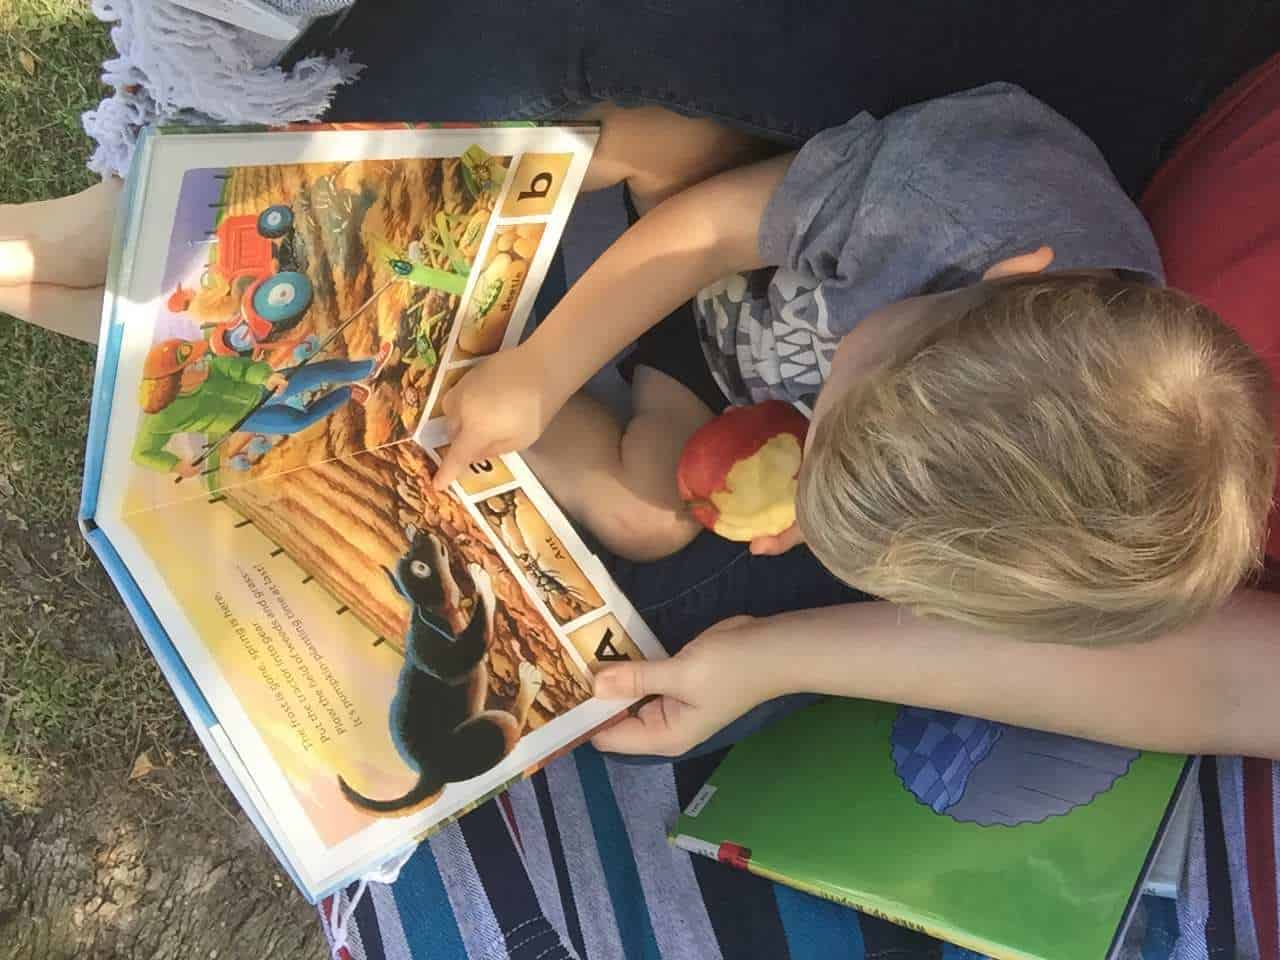 """Overwhelmed with homeschool preschool? Learn how we do homeschool preschool the relaxed way and still get real learning done! I'll give you a hint: it doesn't look much like """"school."""" It looks like life! Click through to steal our top tips and tools for homeschool preschool!"""